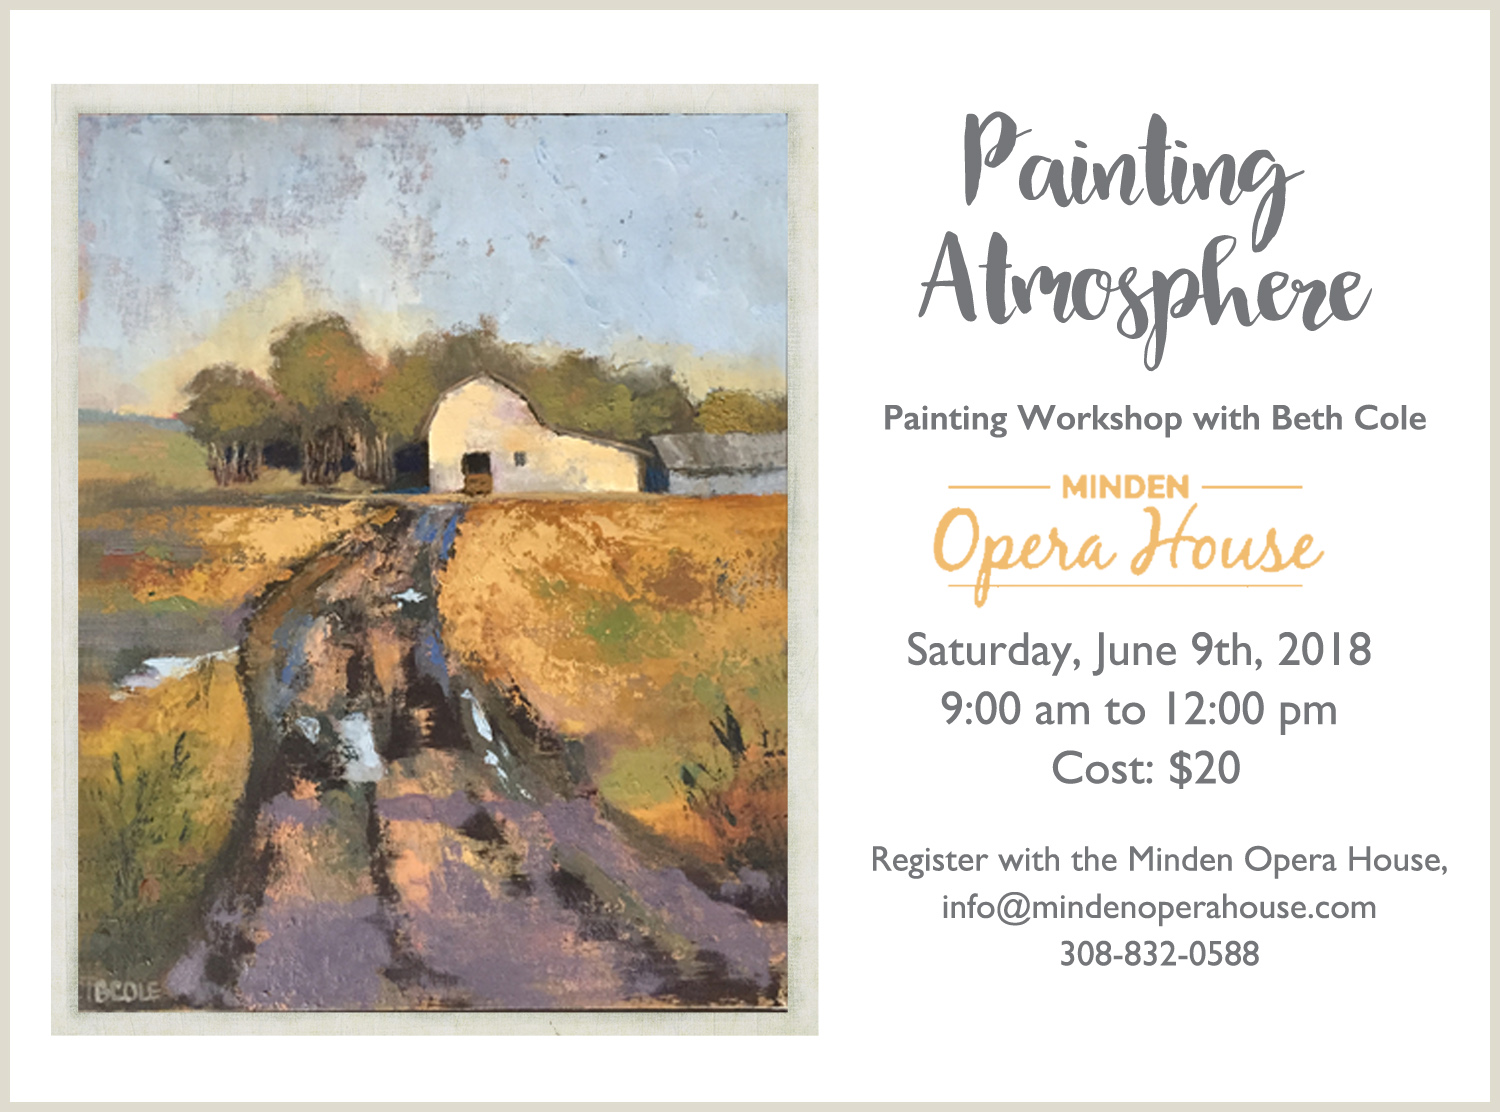 Painting Atmosphere Workshop at the Minden Opera House